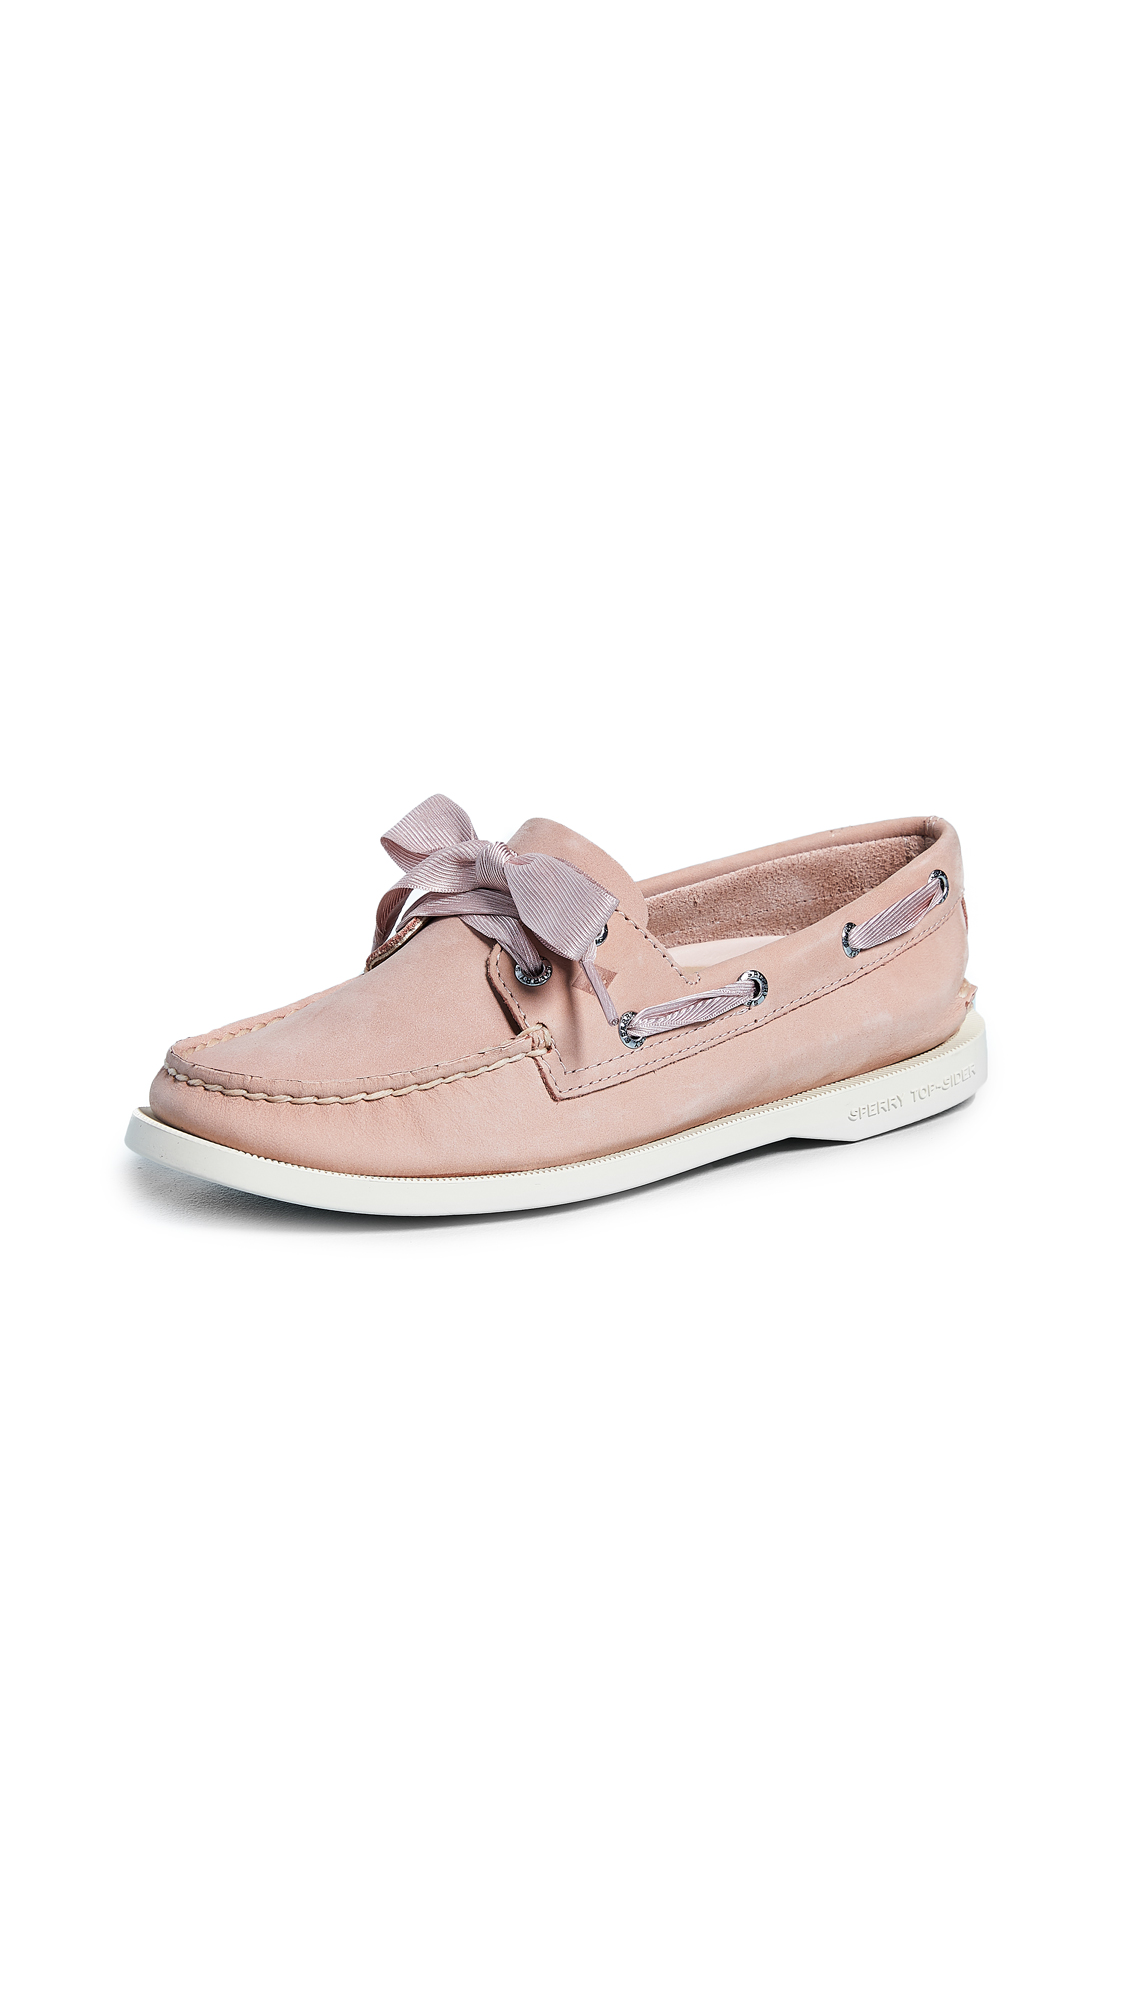 Sperry Satin Lace Boat Shoes - Rose Dust